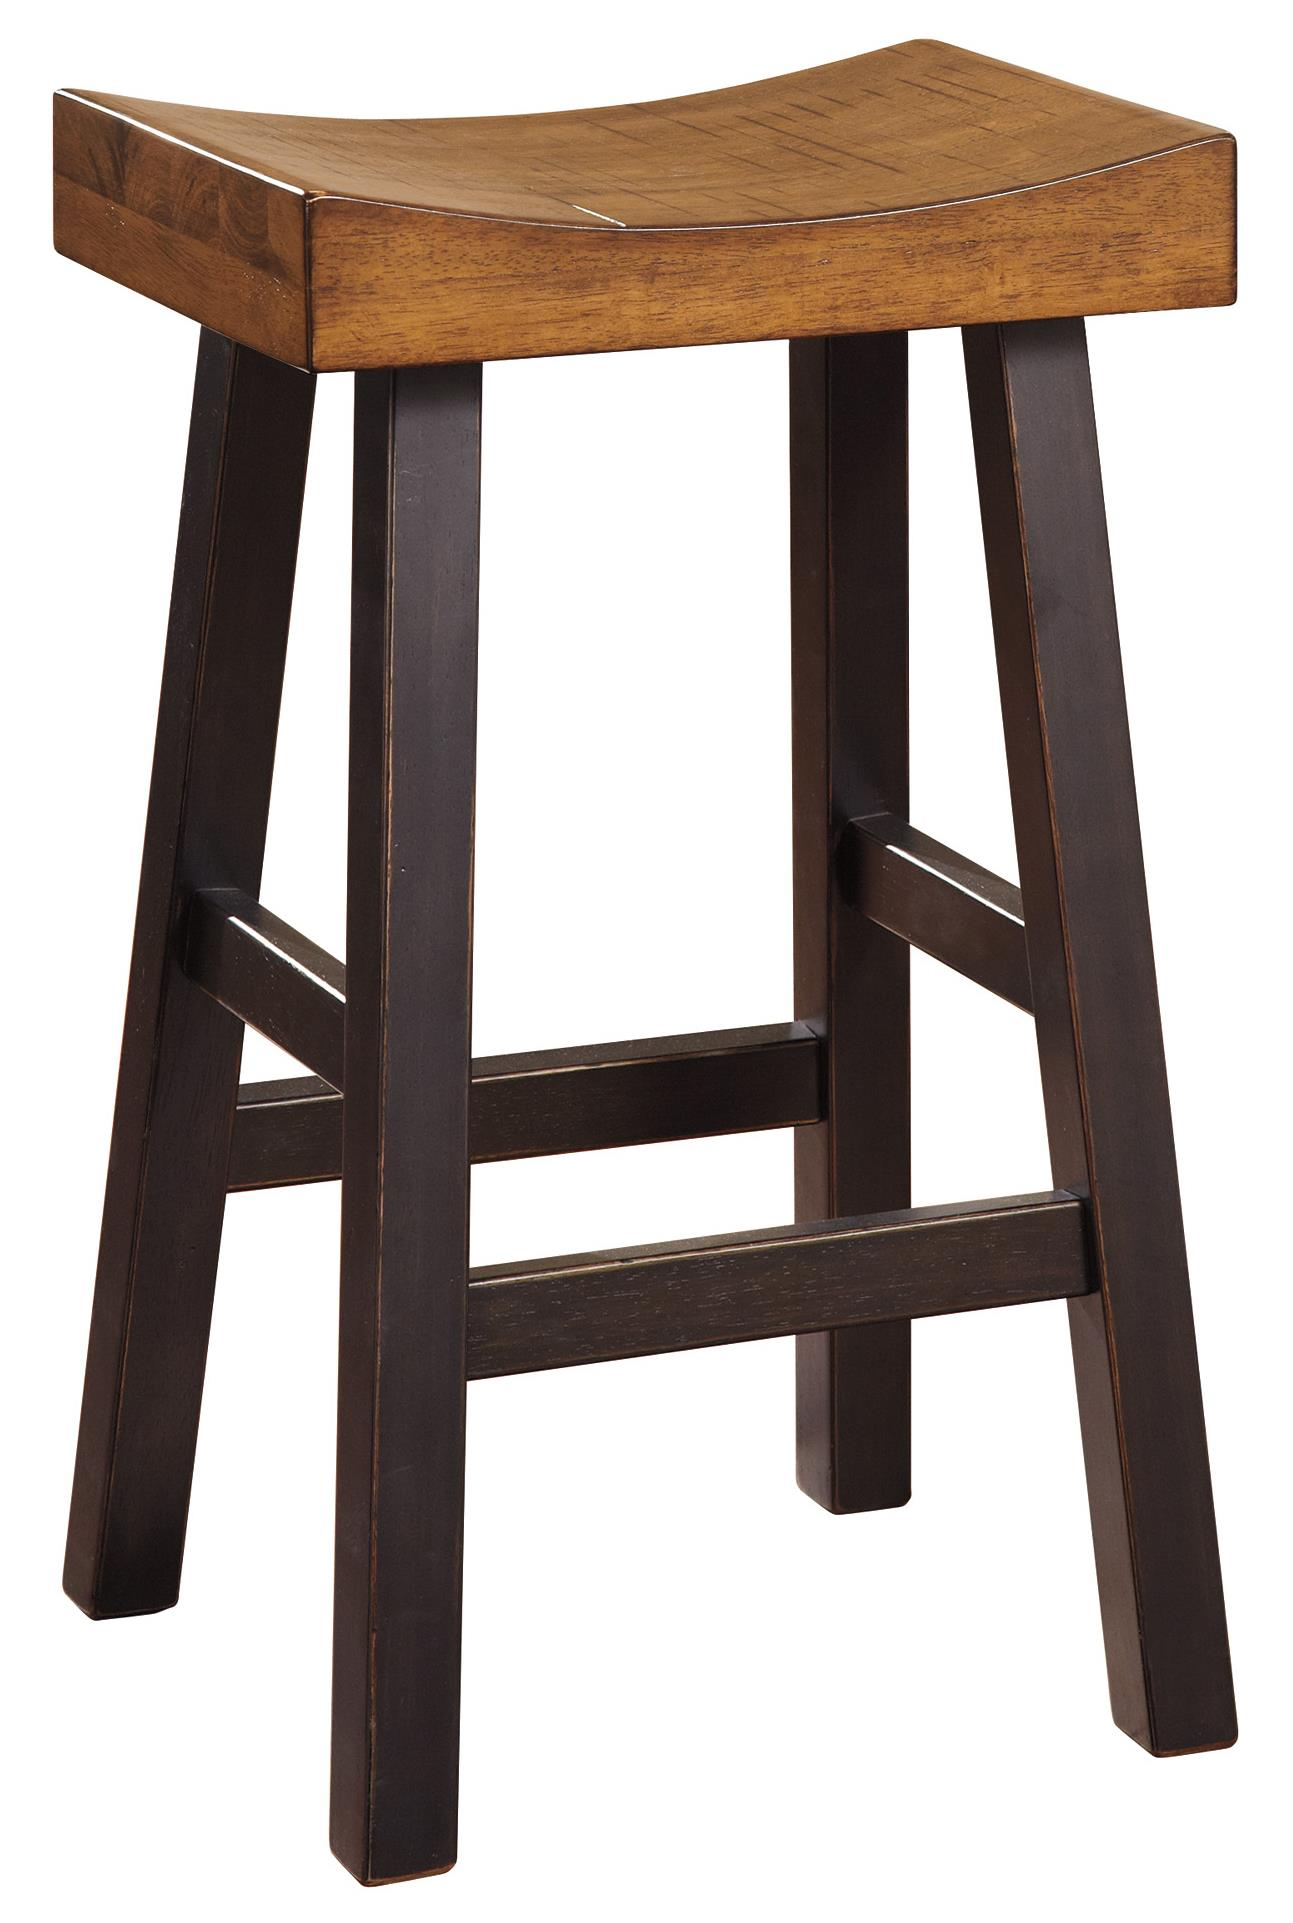 Rustic Two Tone Tall Stool With Saddle Seat By Signature